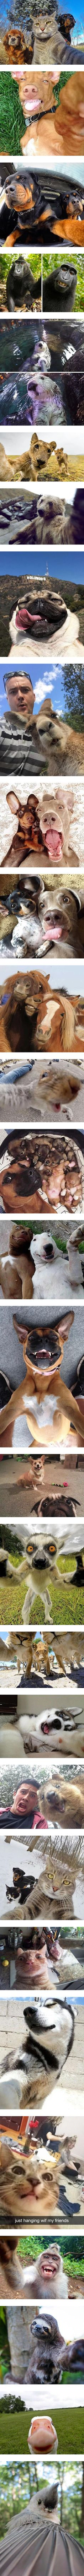 These animals are so good at the selfie game